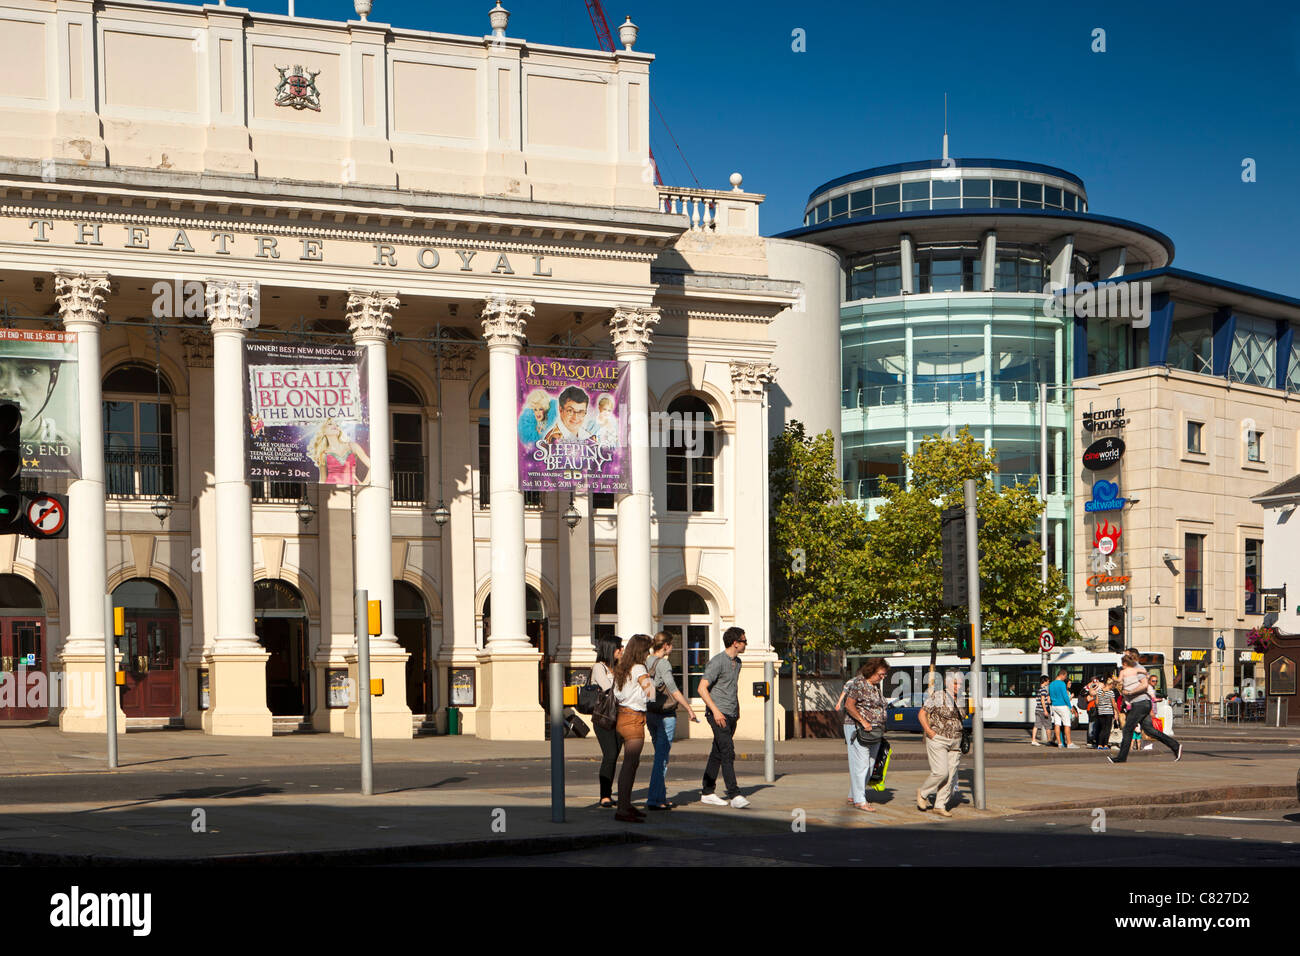 UK, Nottinghamshire, Nottingham, Upper Parliament Street, Theatre Royal and Corner House entertainment complex - Stock Image